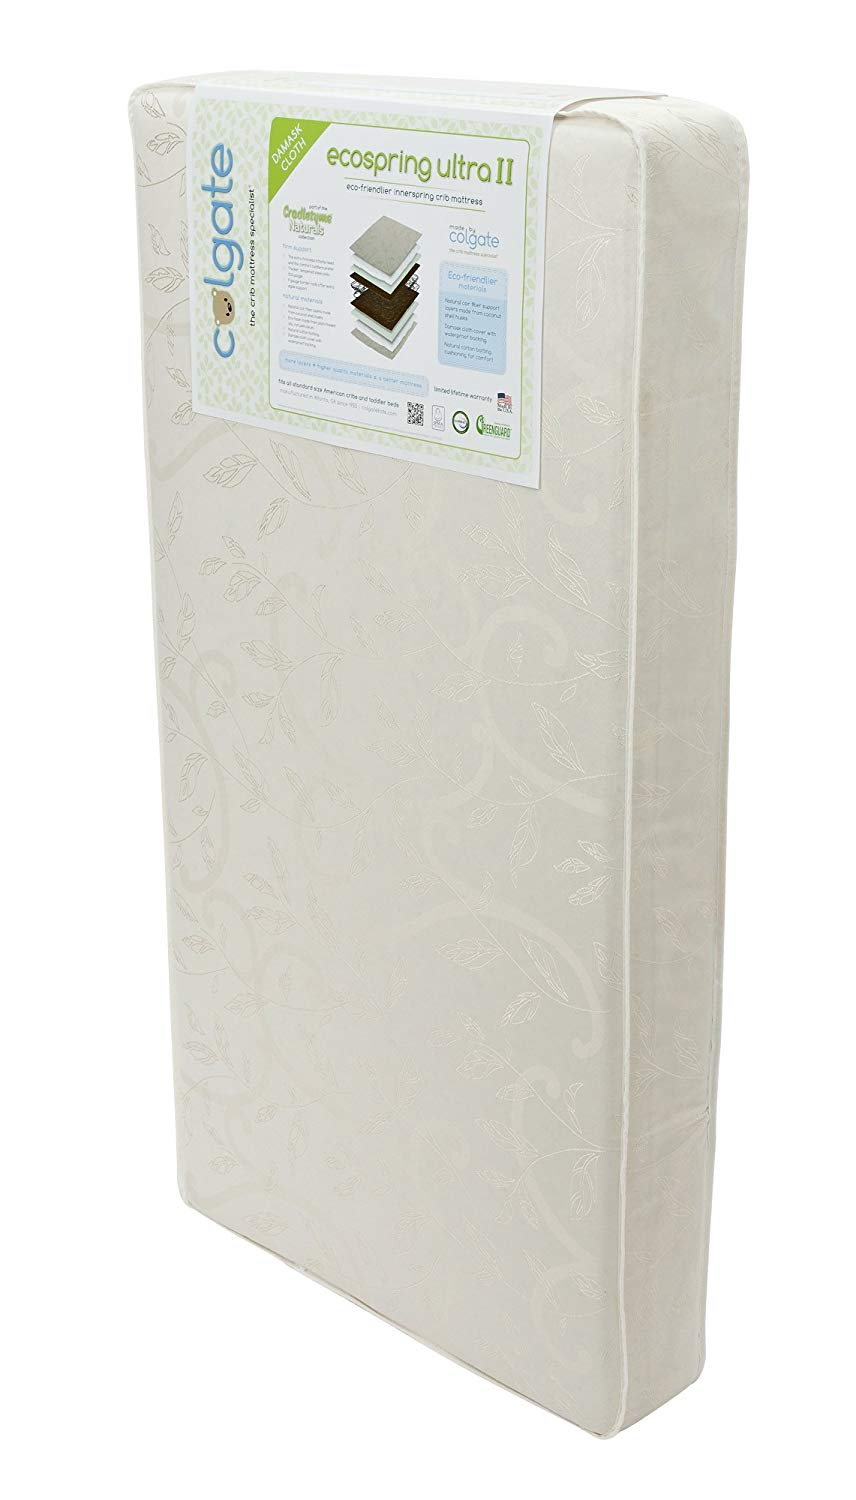 Colgate Best Crib Mattress Reviews by www.snoremagazine.com